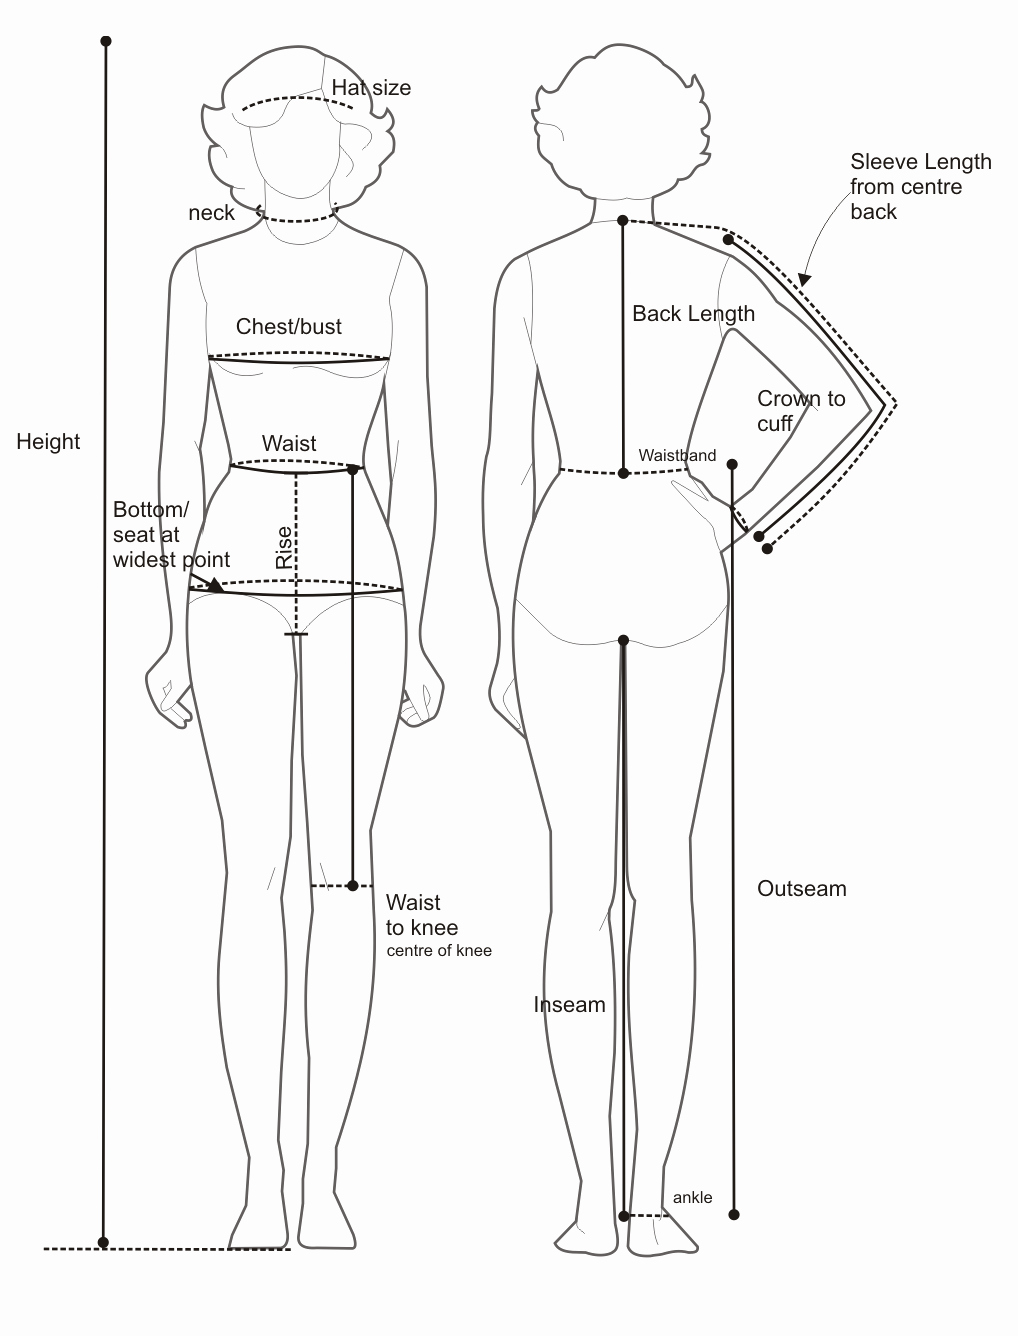 Clothing Size Chart Template Best Of J Von Stratton May 2010